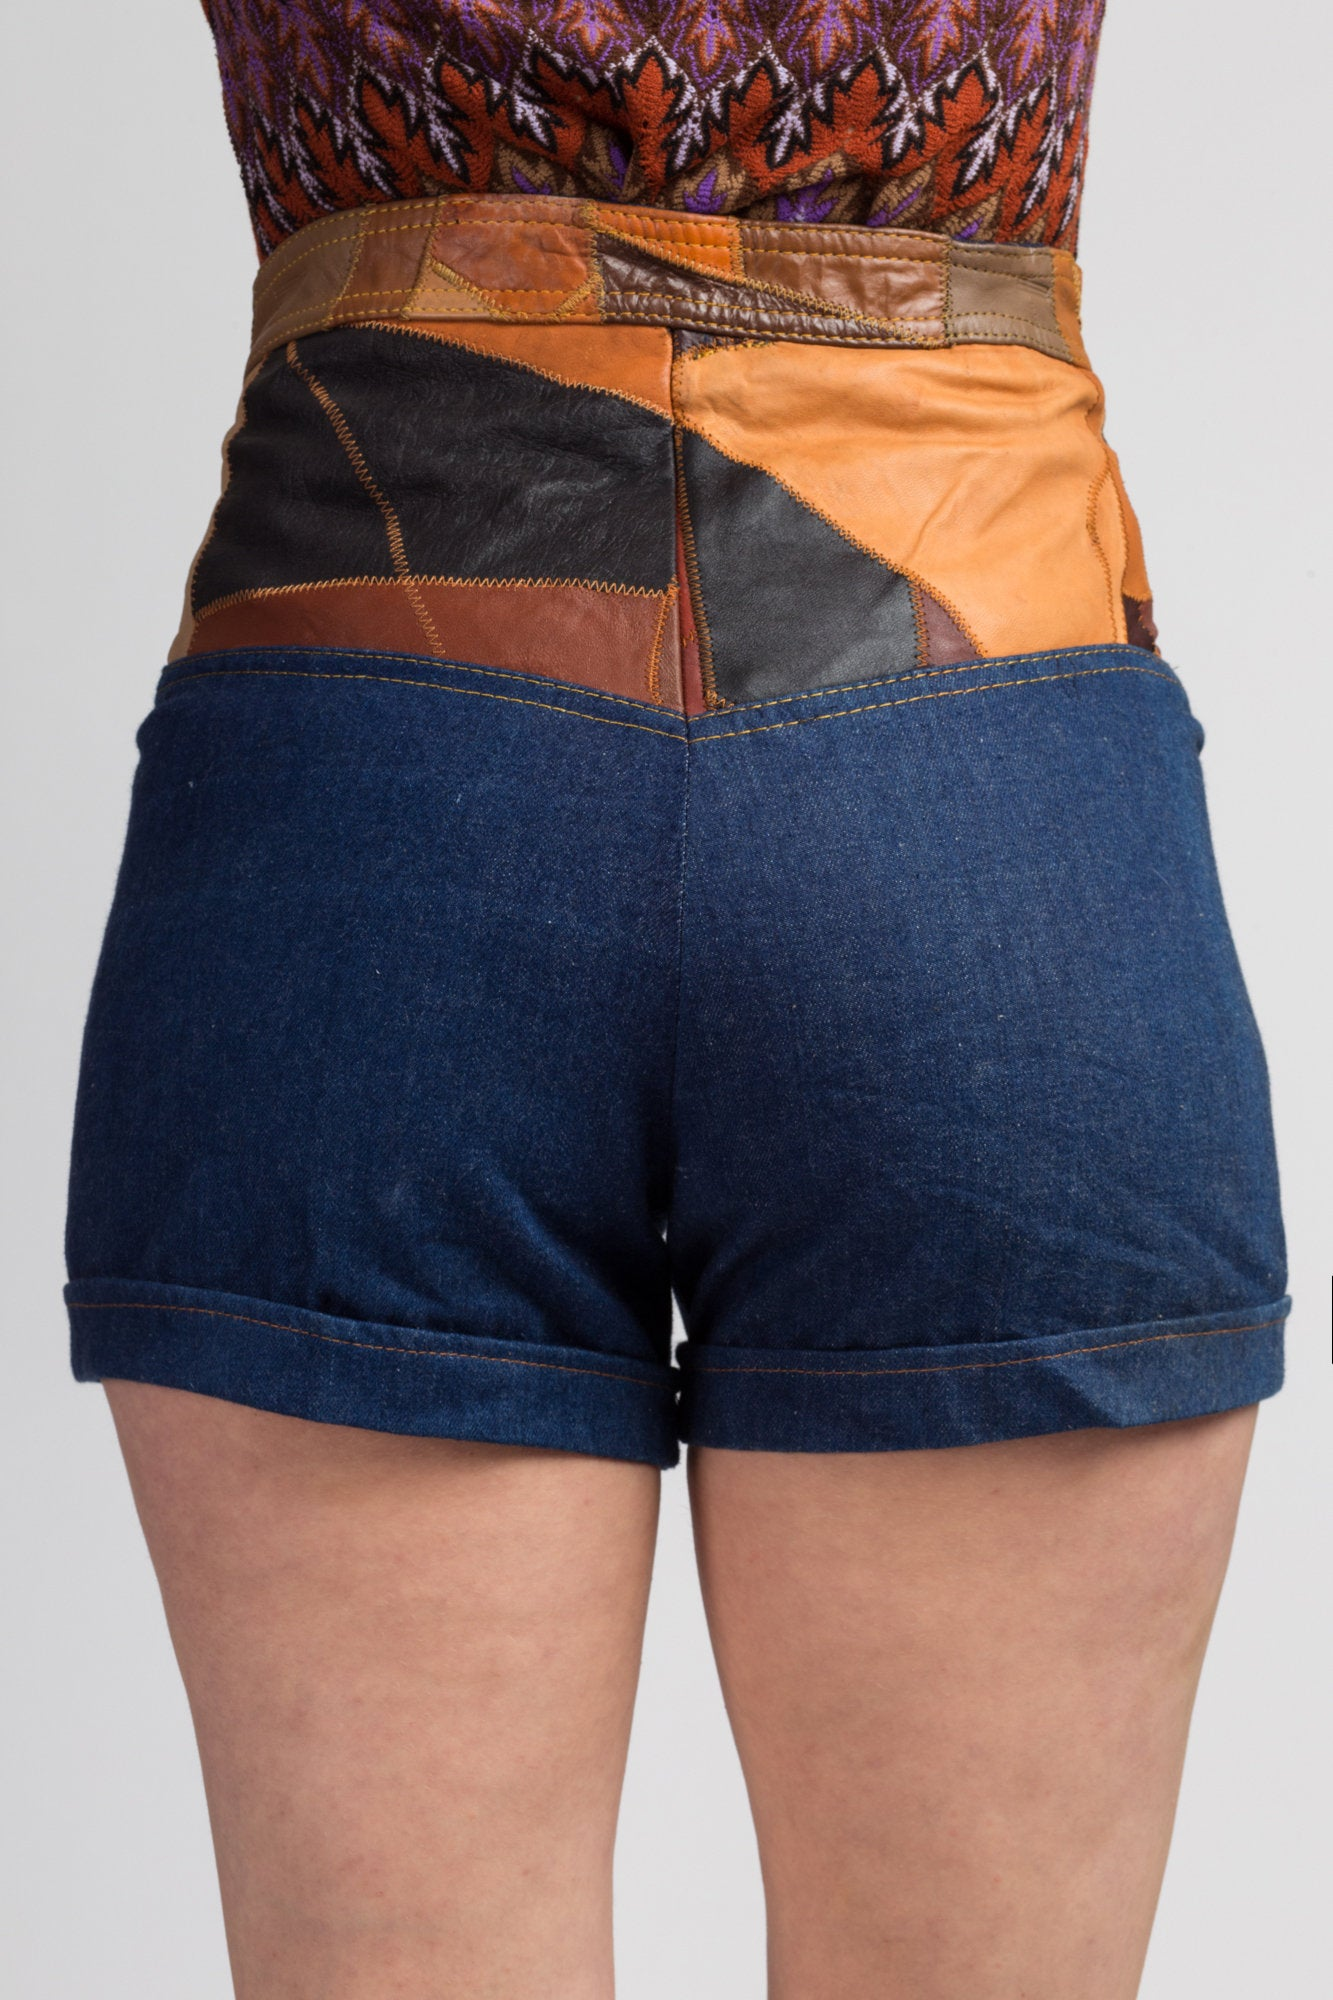 70s Leather Patchwork Jean Shorts - Small